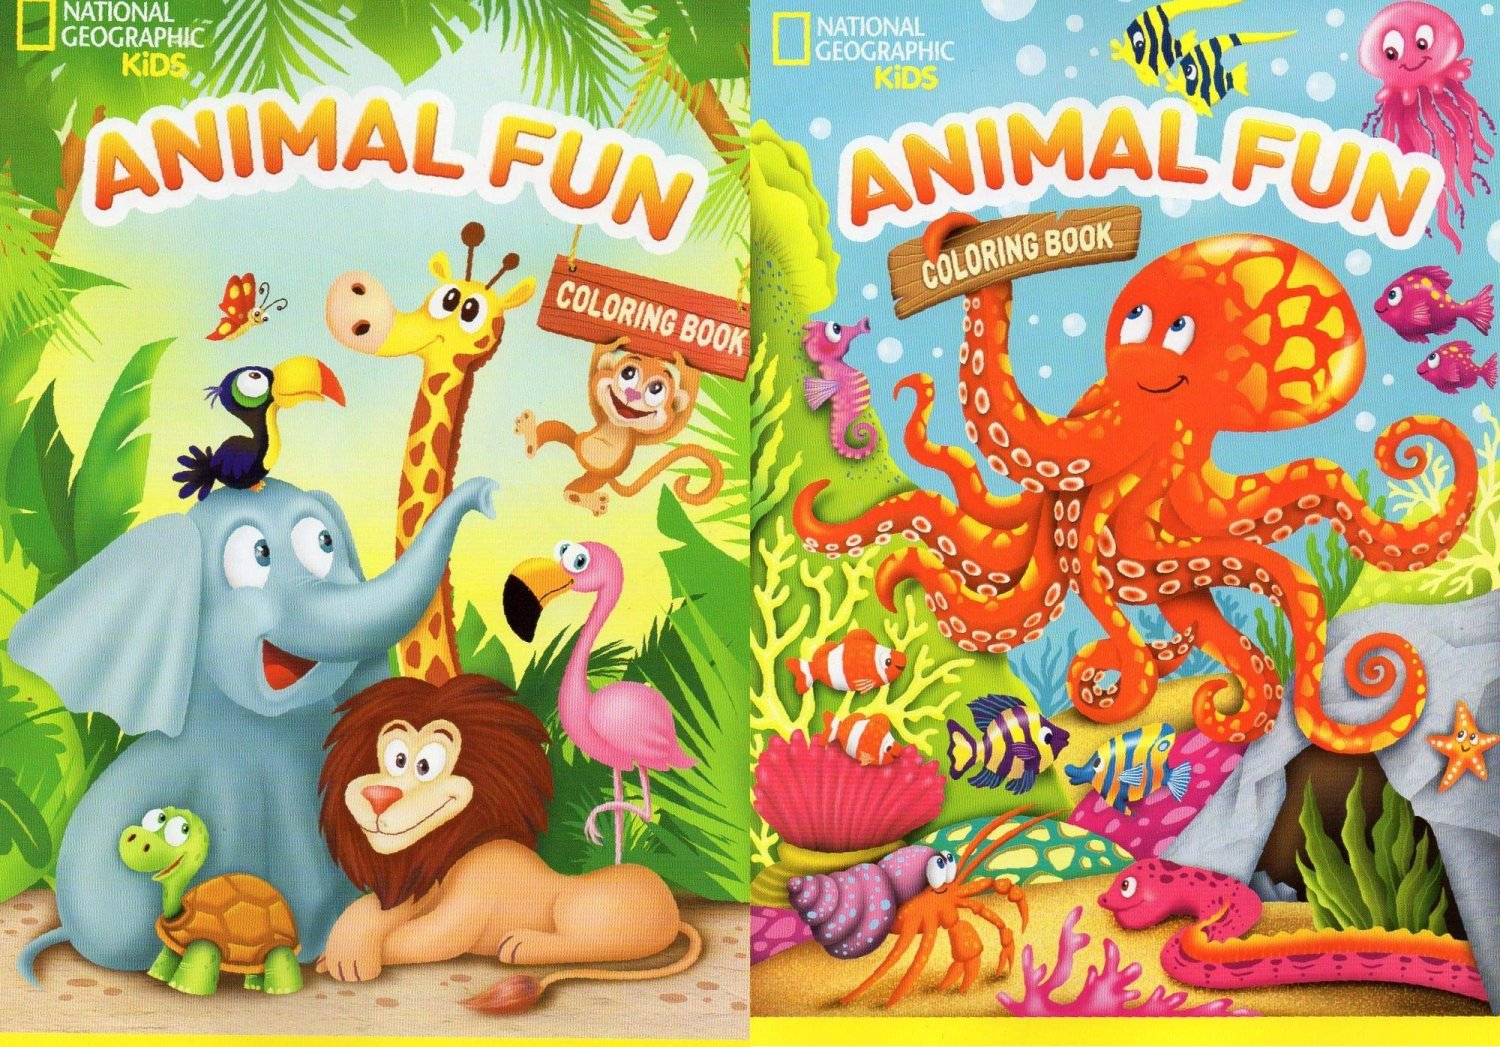 National Geographic Kids - Animal Fun - Coloring Book - Set of 2 Books